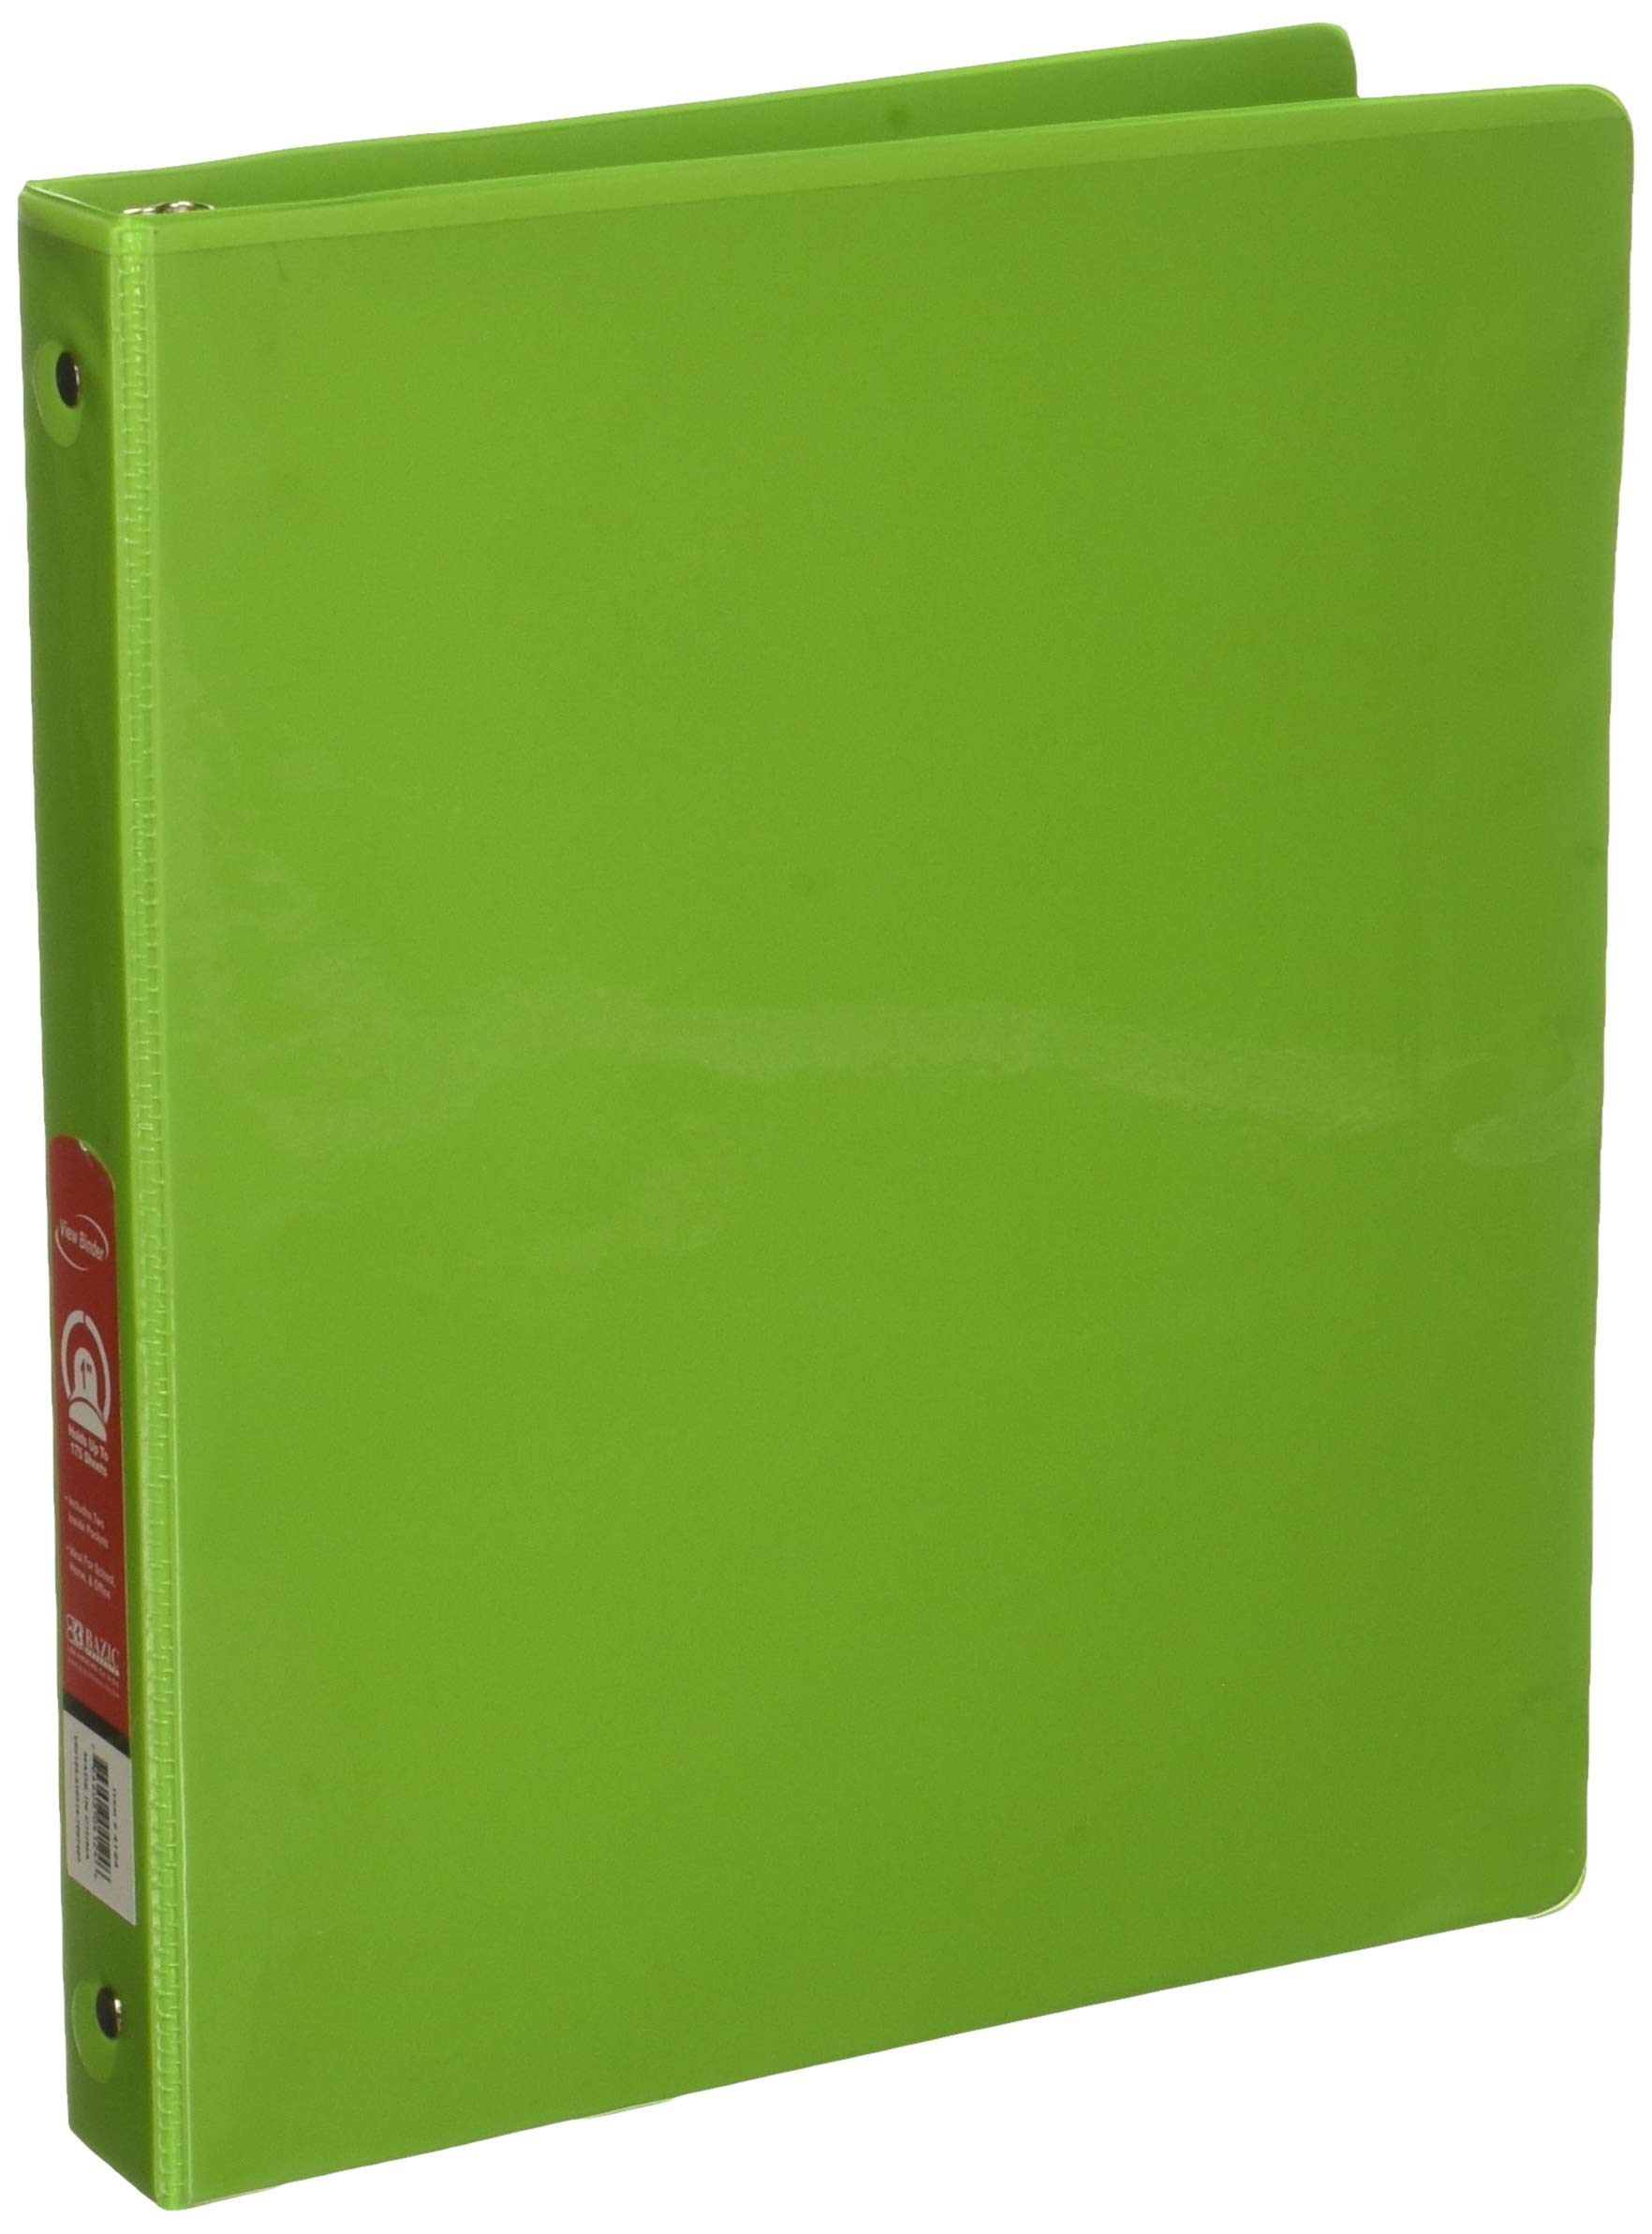 BAZIC 1'' Lime Green 3-Ring View Binder w/ 2-Pockets, Case of 12